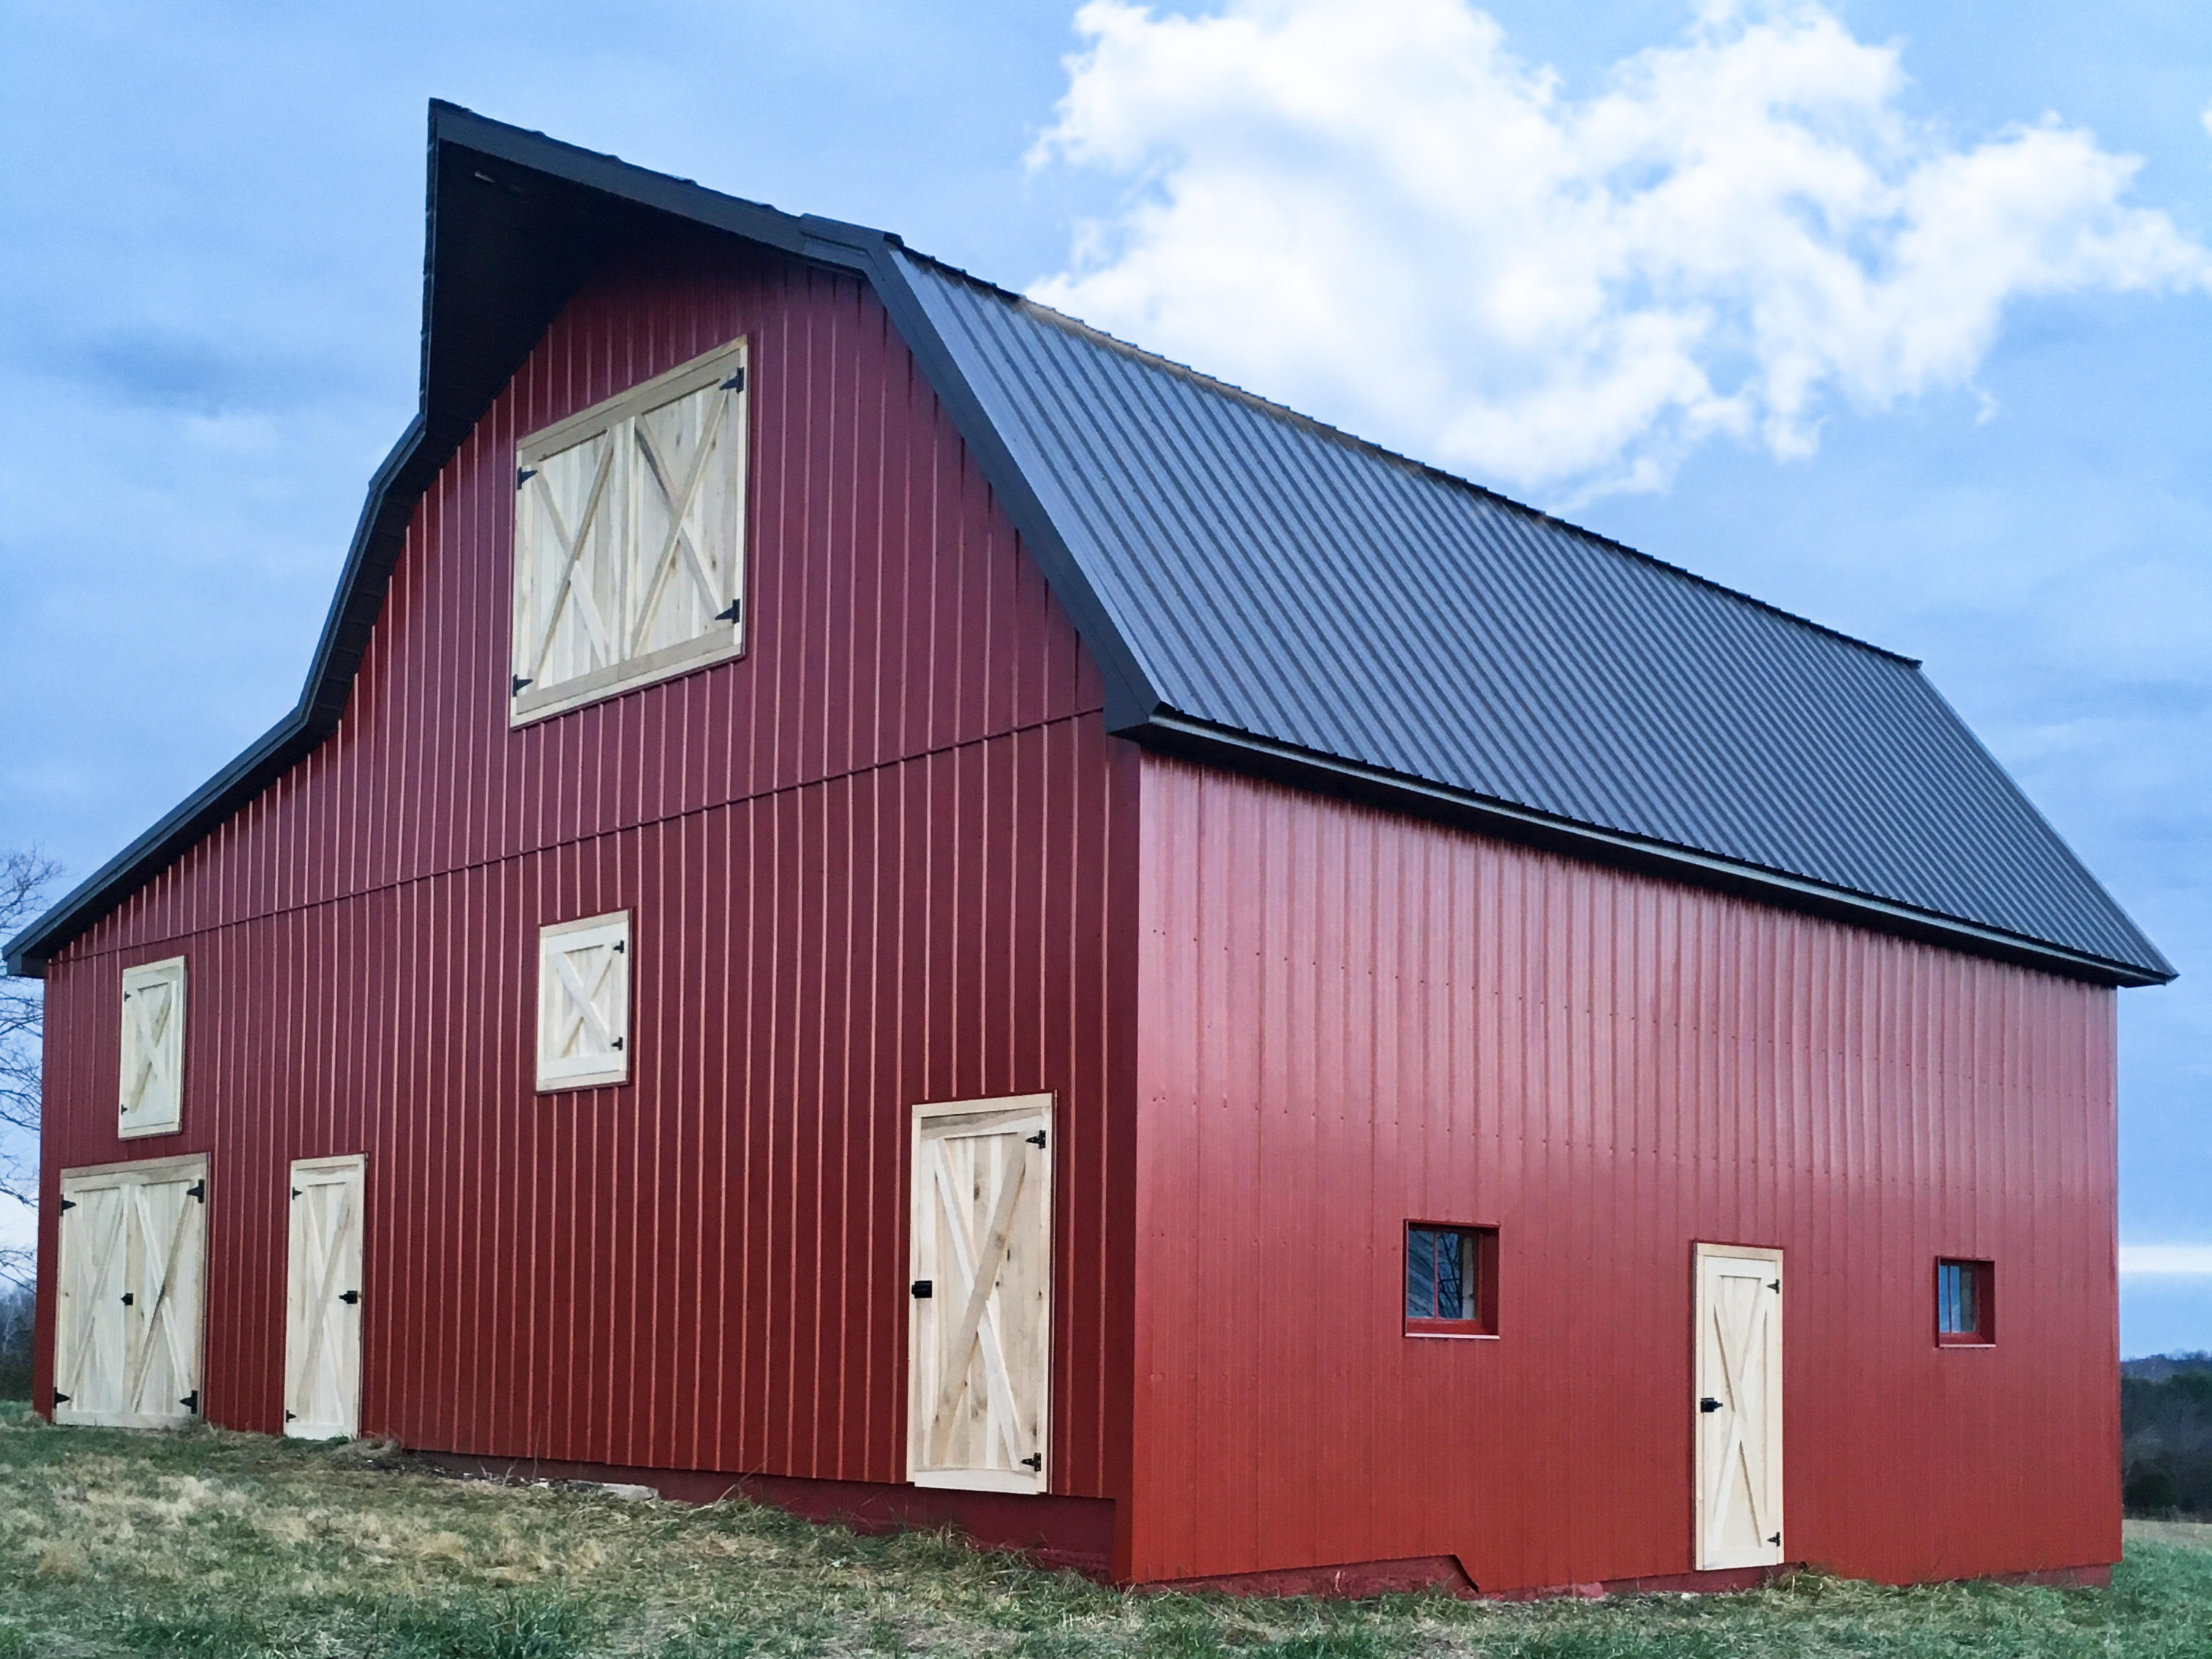 Amish Roofers Barn